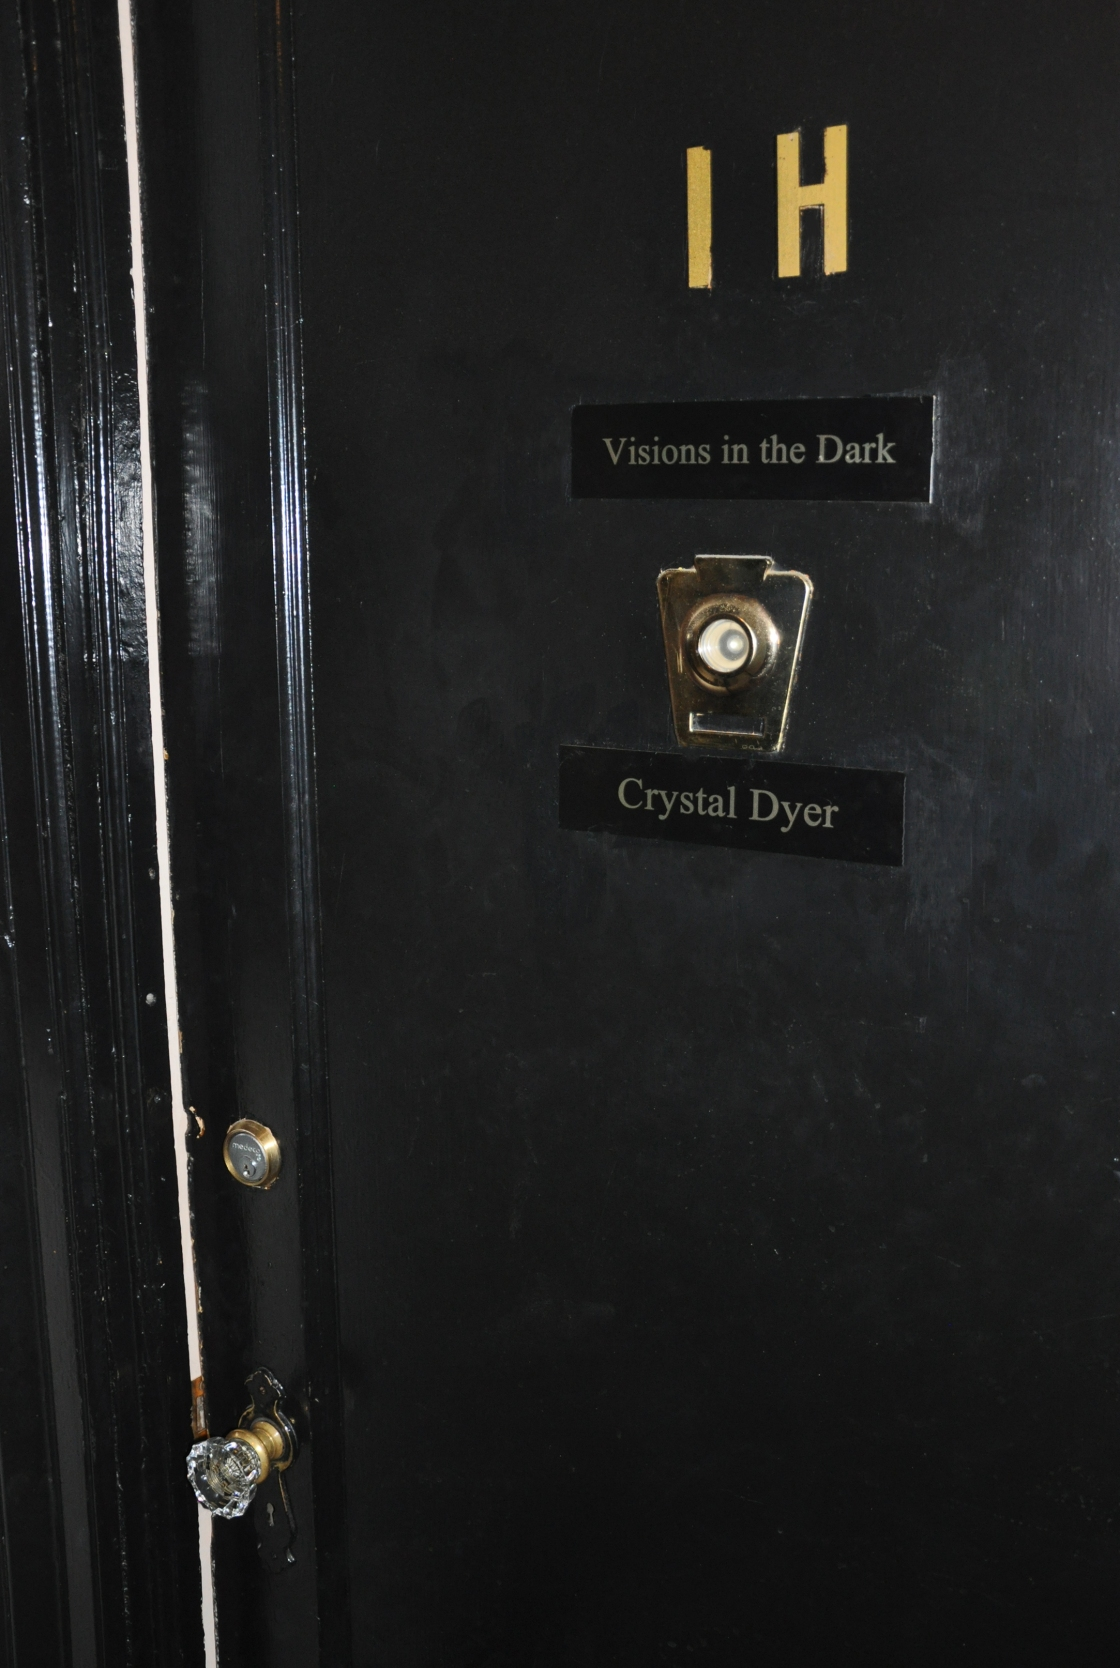 Crystal Dyer Visions in the Dark Door IH New York NYC